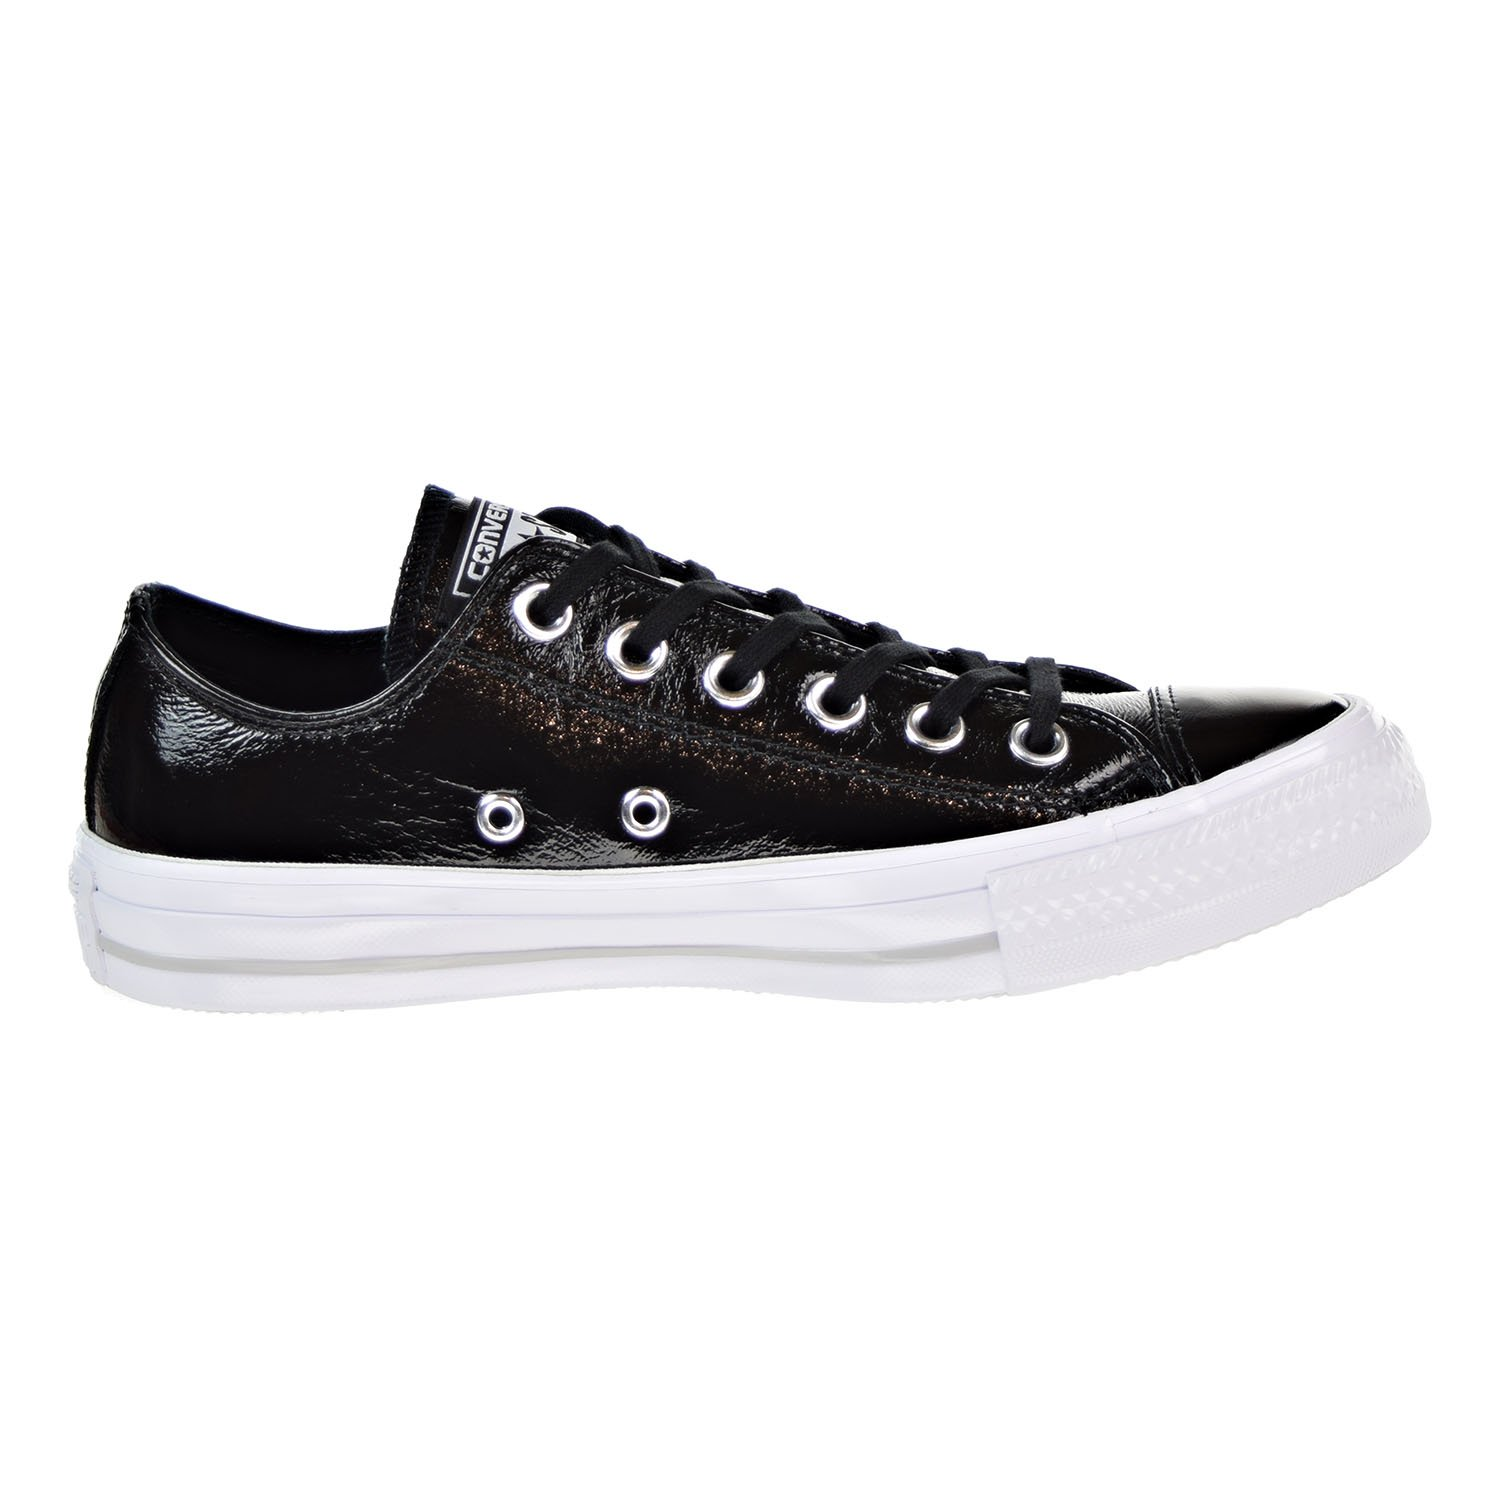 Converse Chucks Low CT As OX 558002C Schwarz schwarz